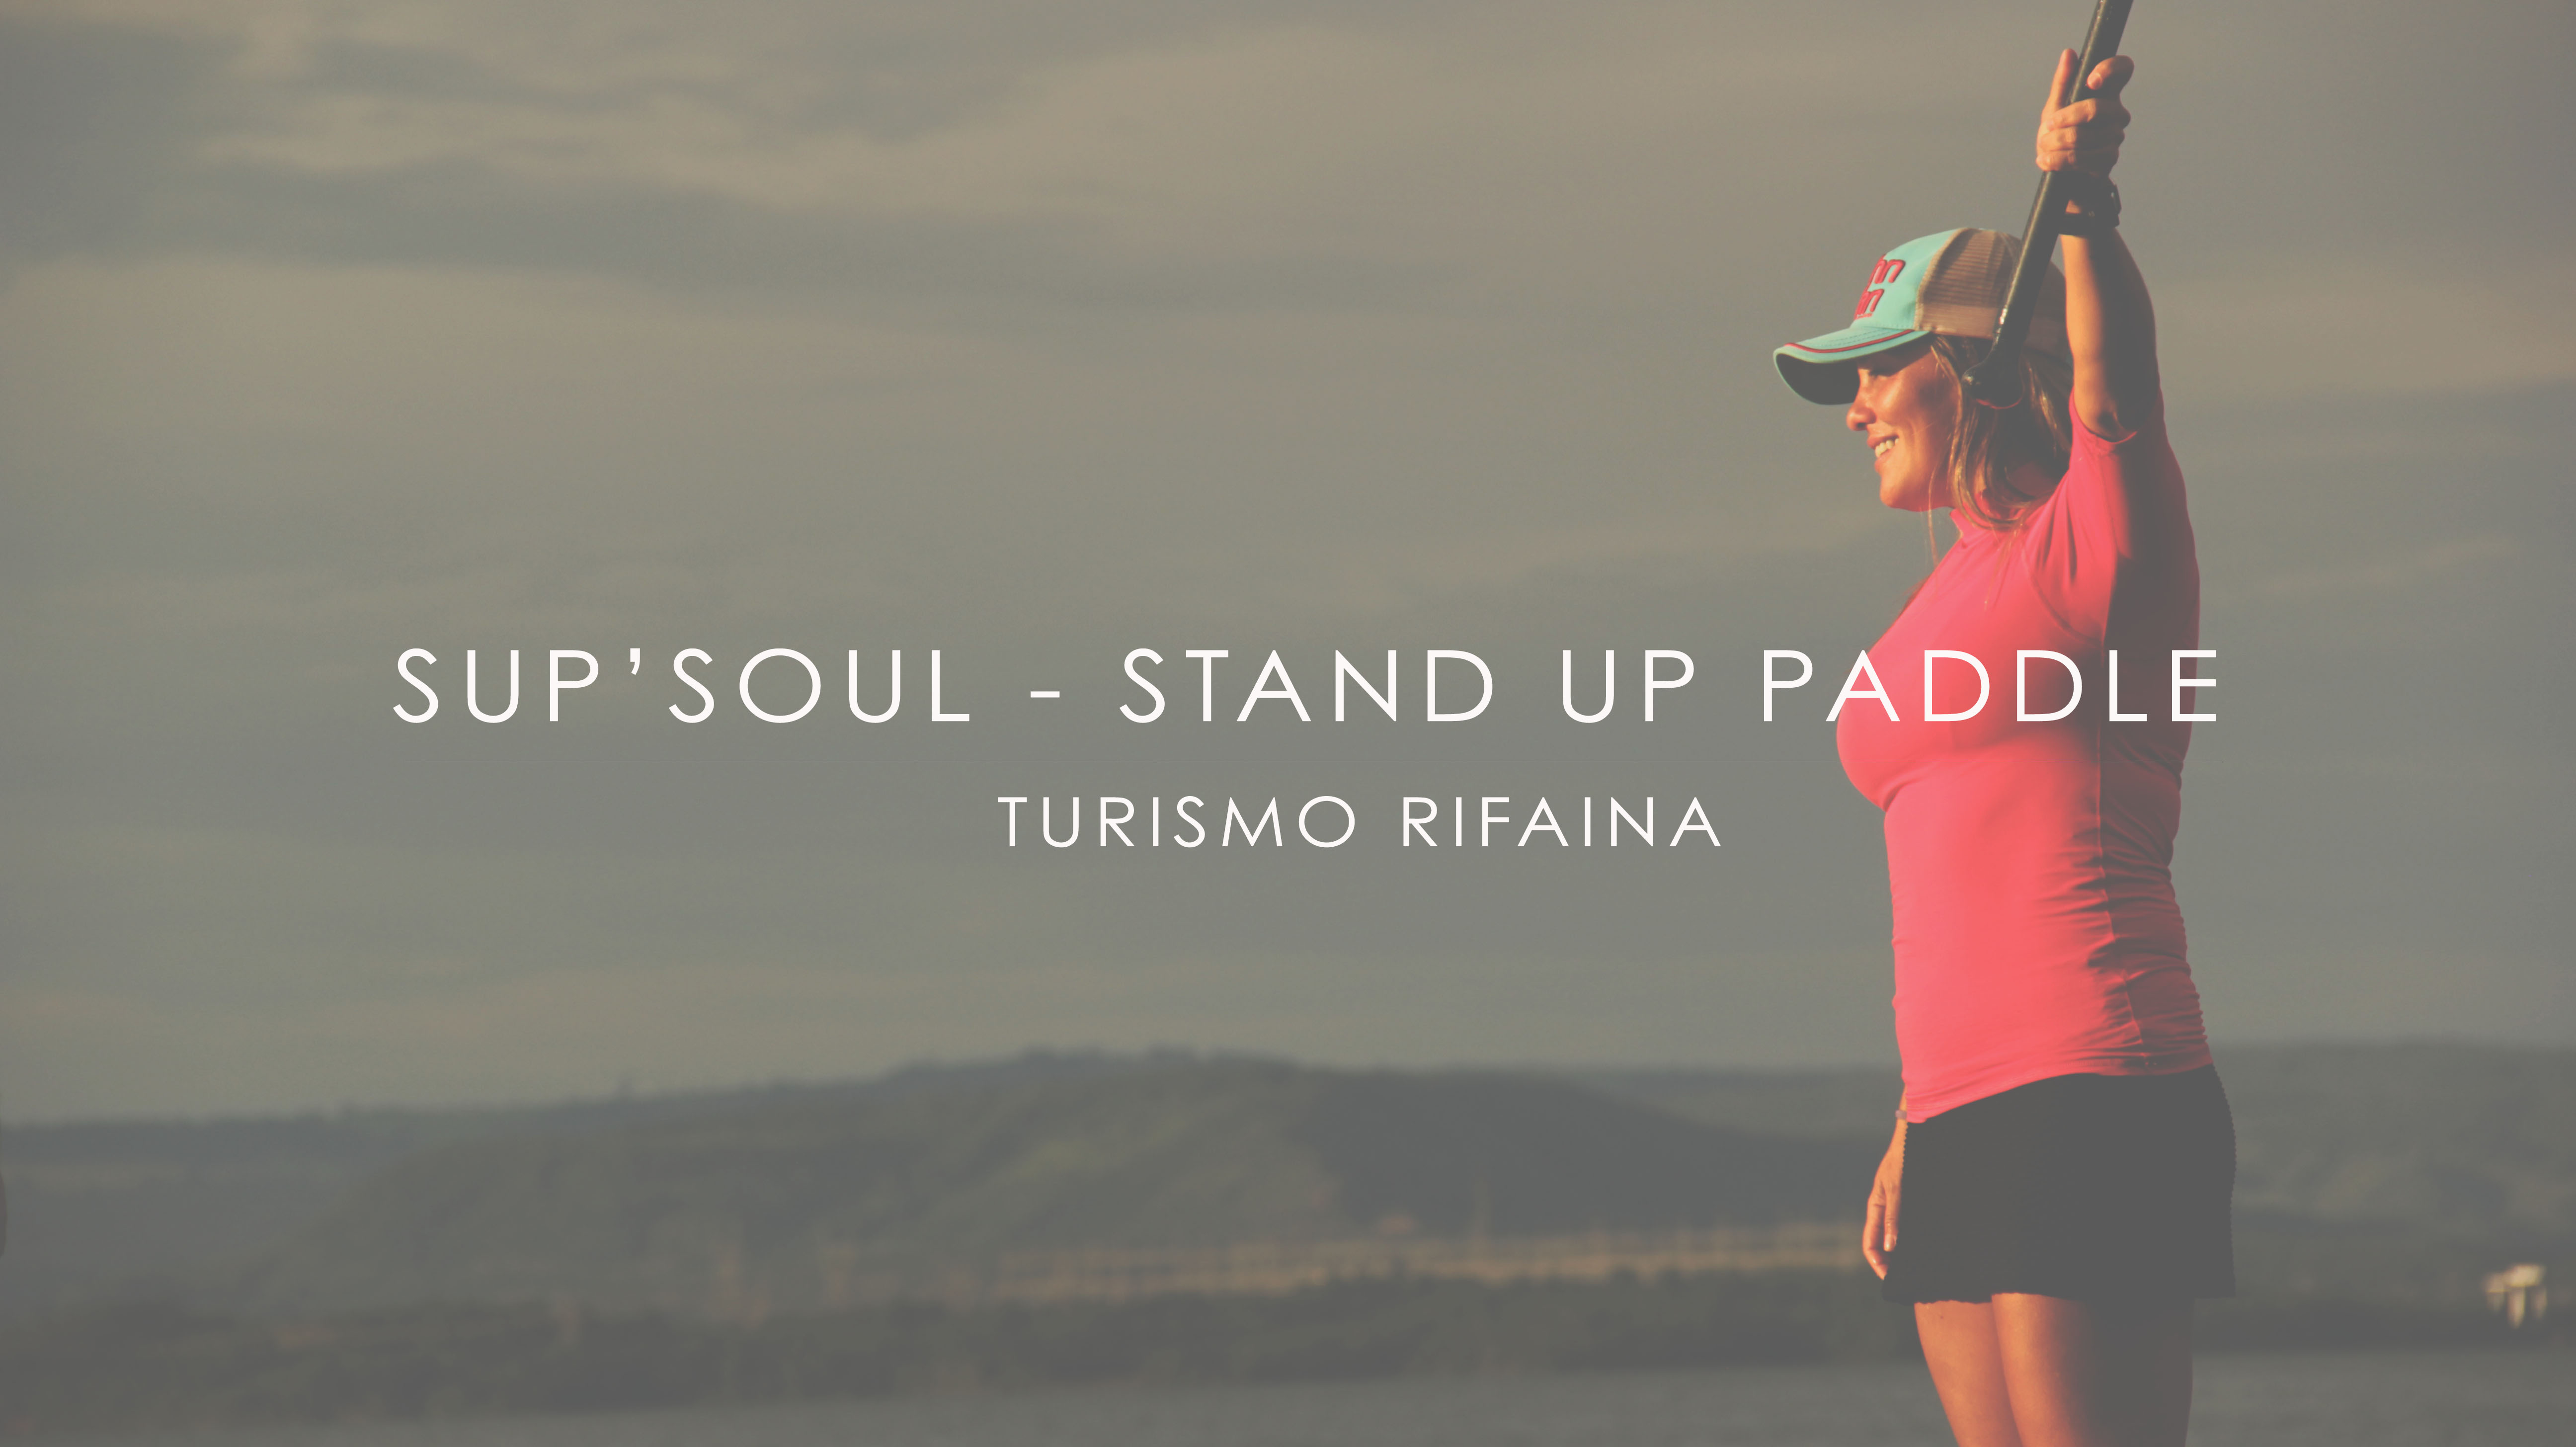 SUP'SOUL – STAND UP PADLLE RIFAINA